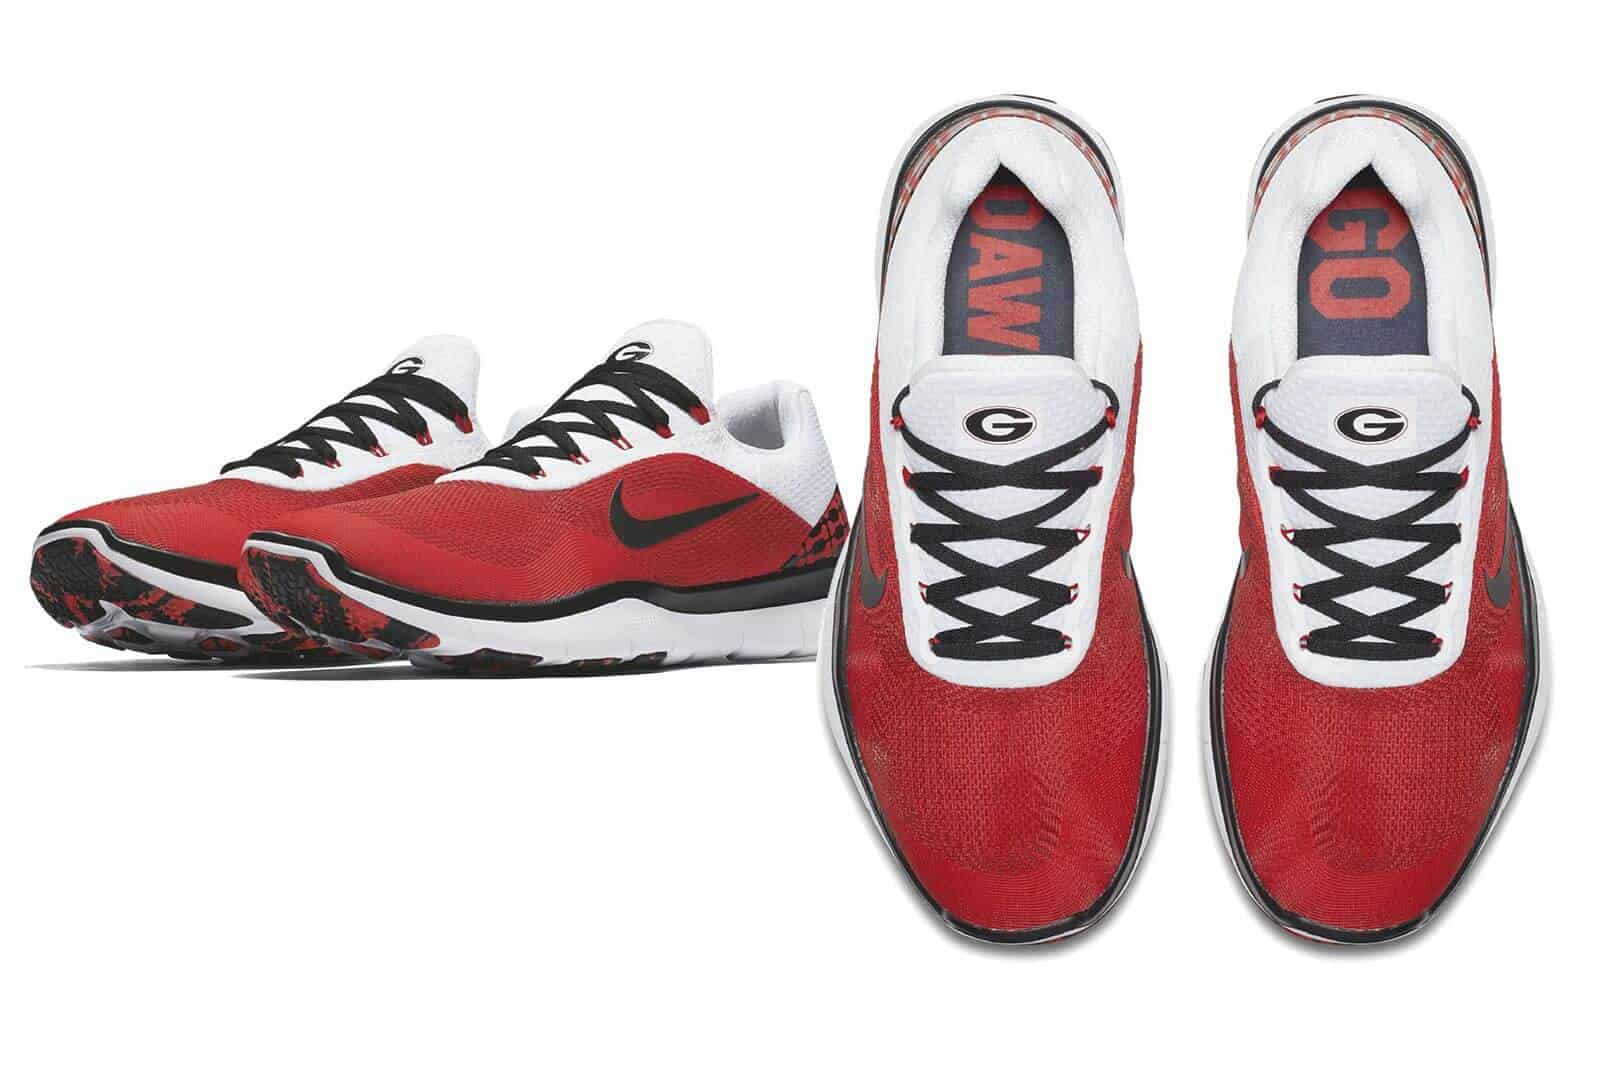 quality design d9729 47e3e 2017 Week Zero Nike UGA Shoes